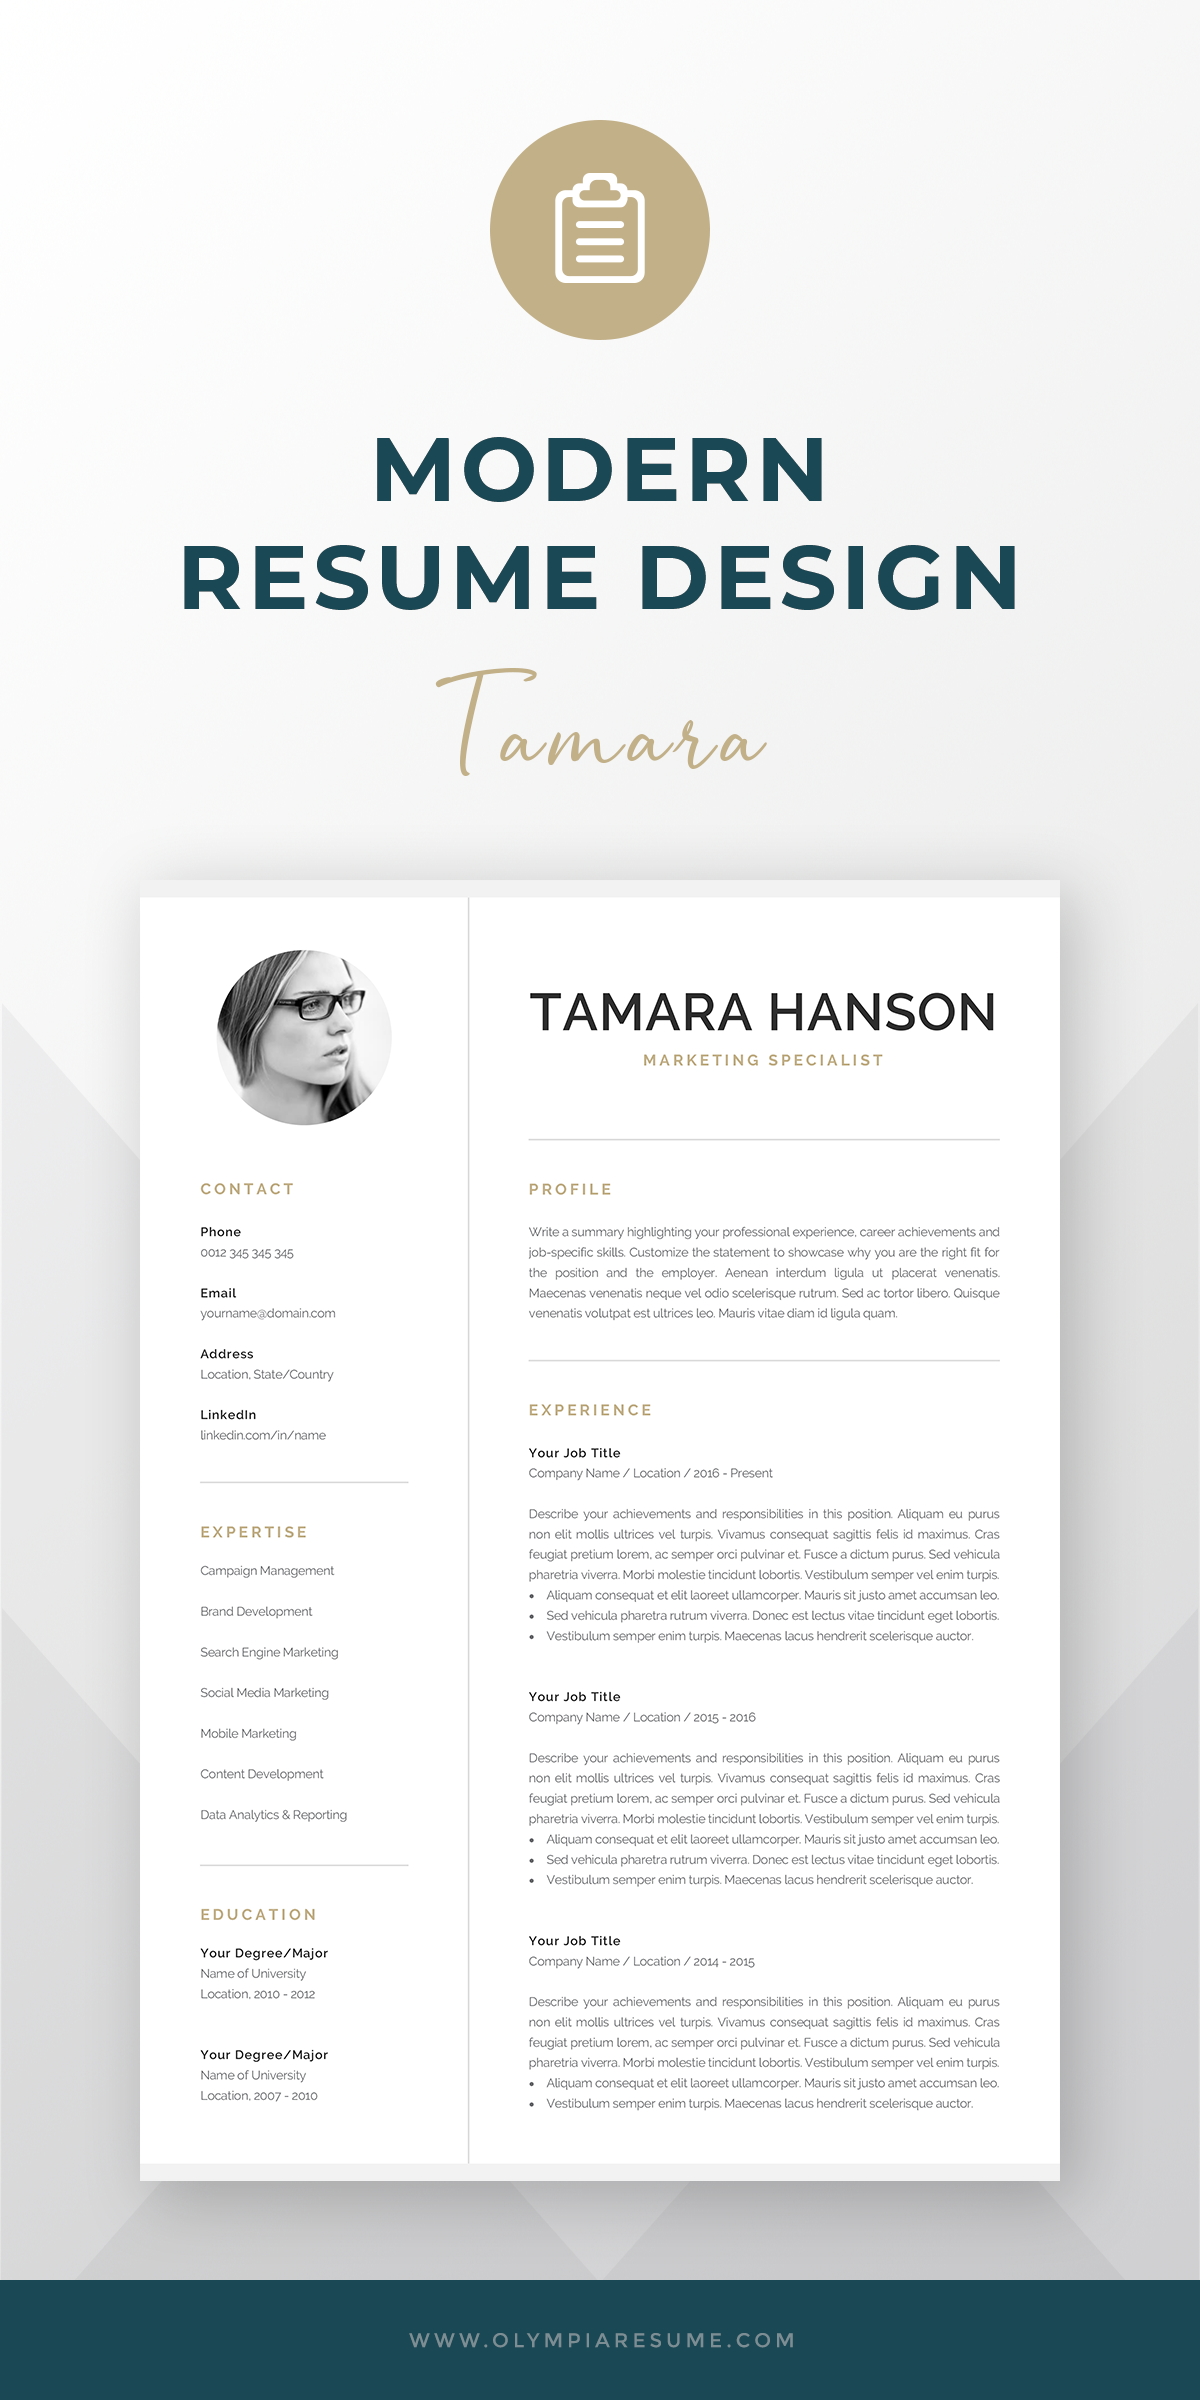 Modern Cv Template With Photo 1 2 Page Resume Professional Photo Resume For Word Mac Pages Marketing Cv Instant Download Tamara Modern Cv Template Cv Template One Page Resume Template